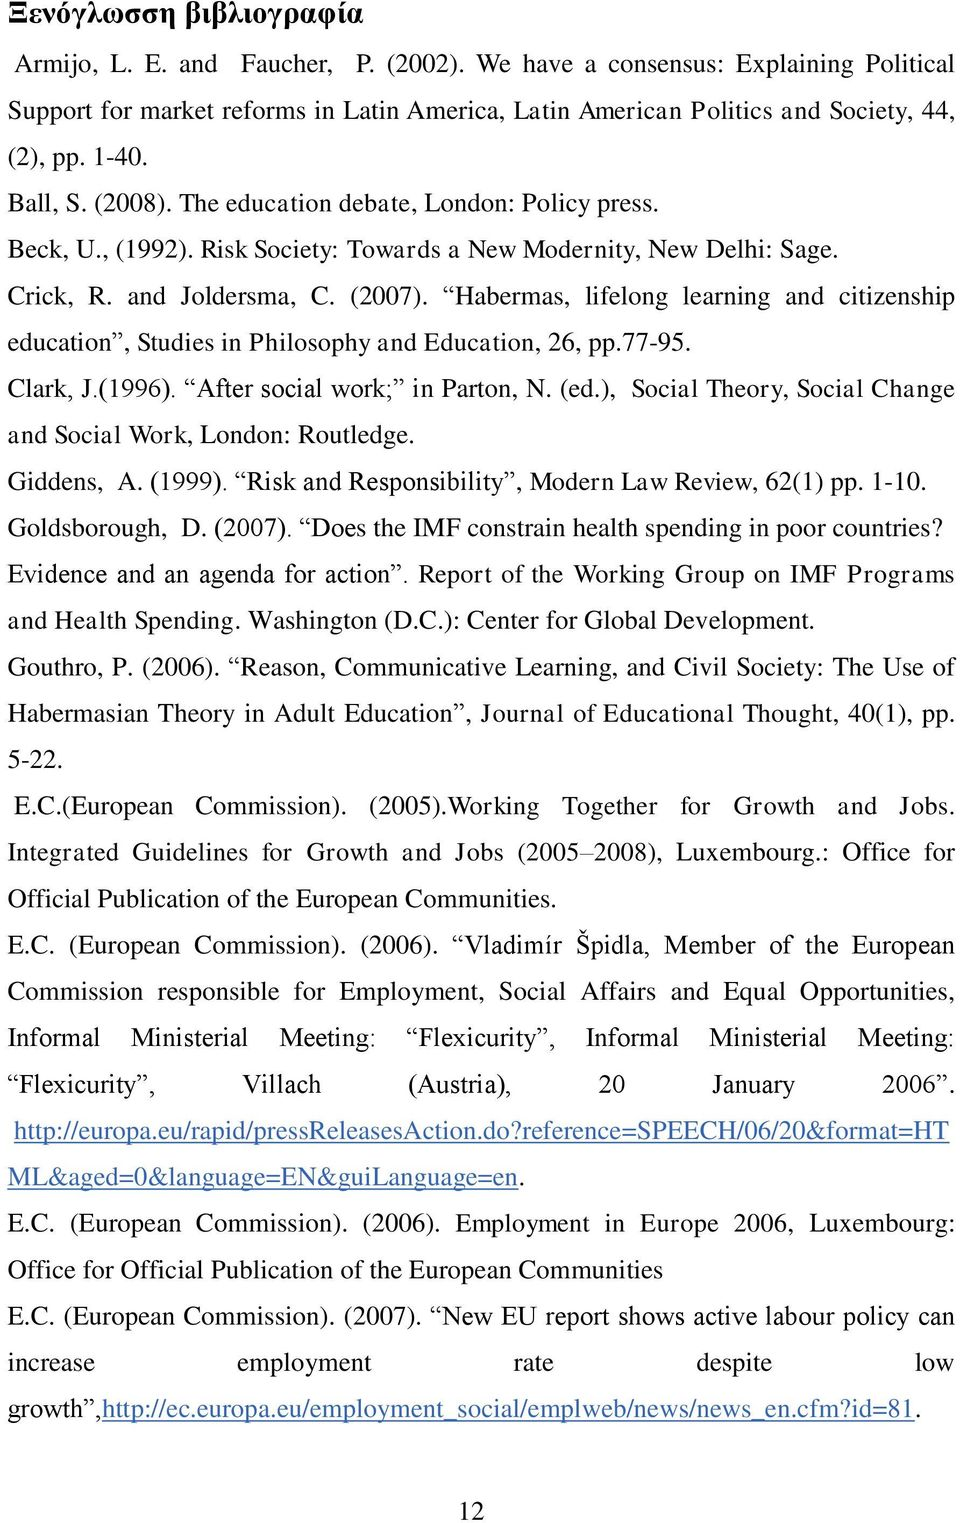 Habermas, lifelong learning and citizenship education, Studies in Philosophy and Education, 26, pp.77-95. Clark, J.(1996). After social work; in Parton, N. (ed.